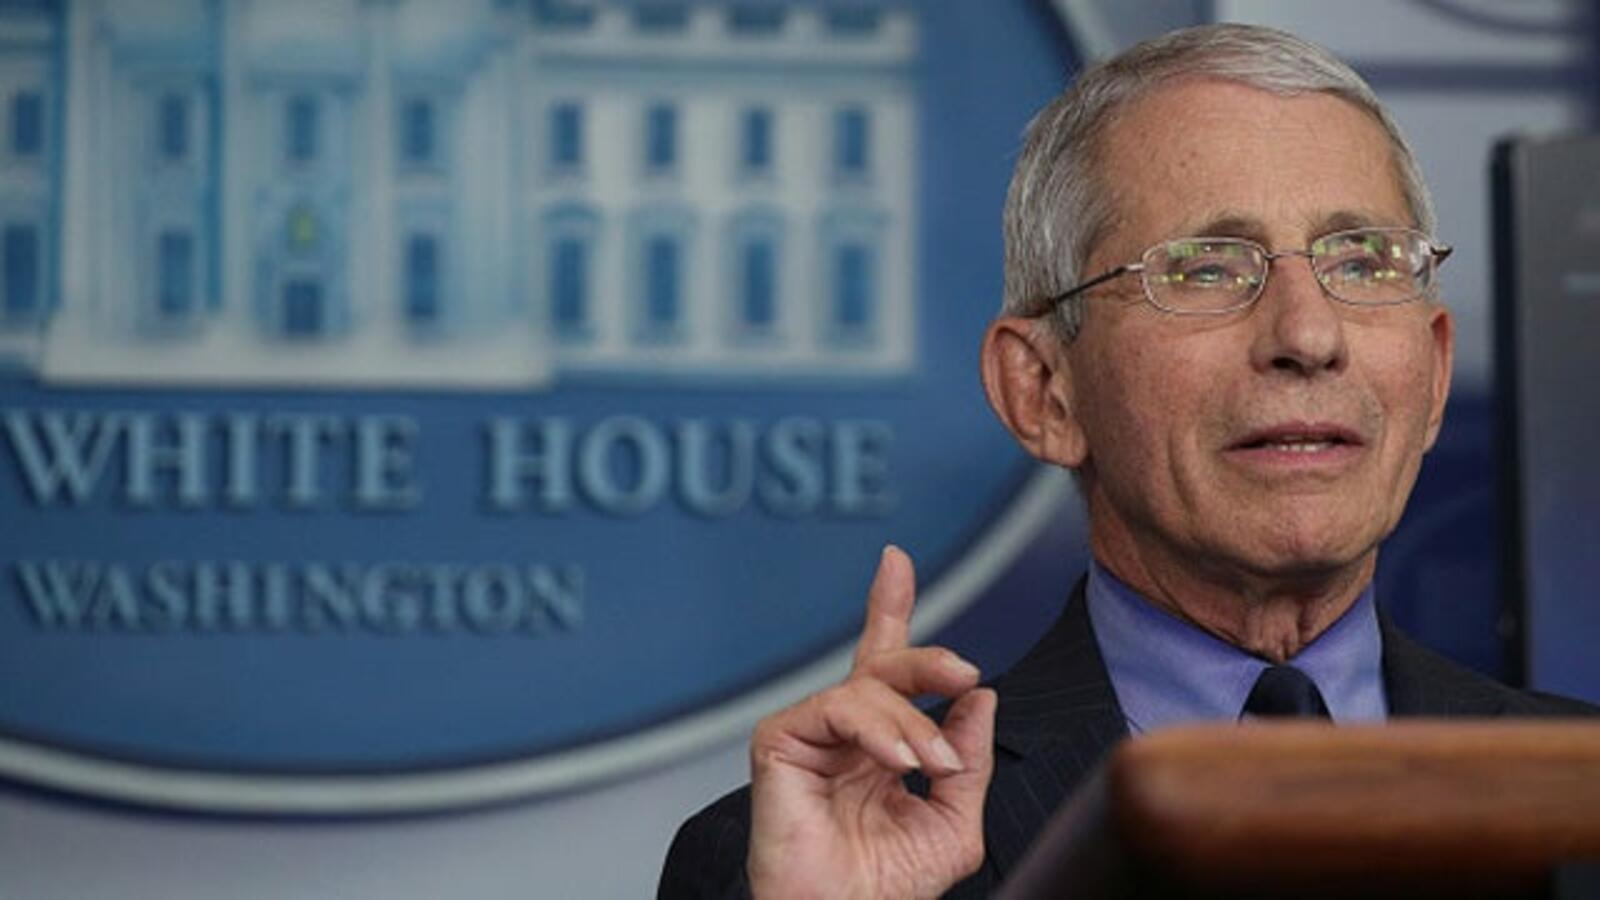 Fauci: When You Criticize Me, You Attack Science Itself!